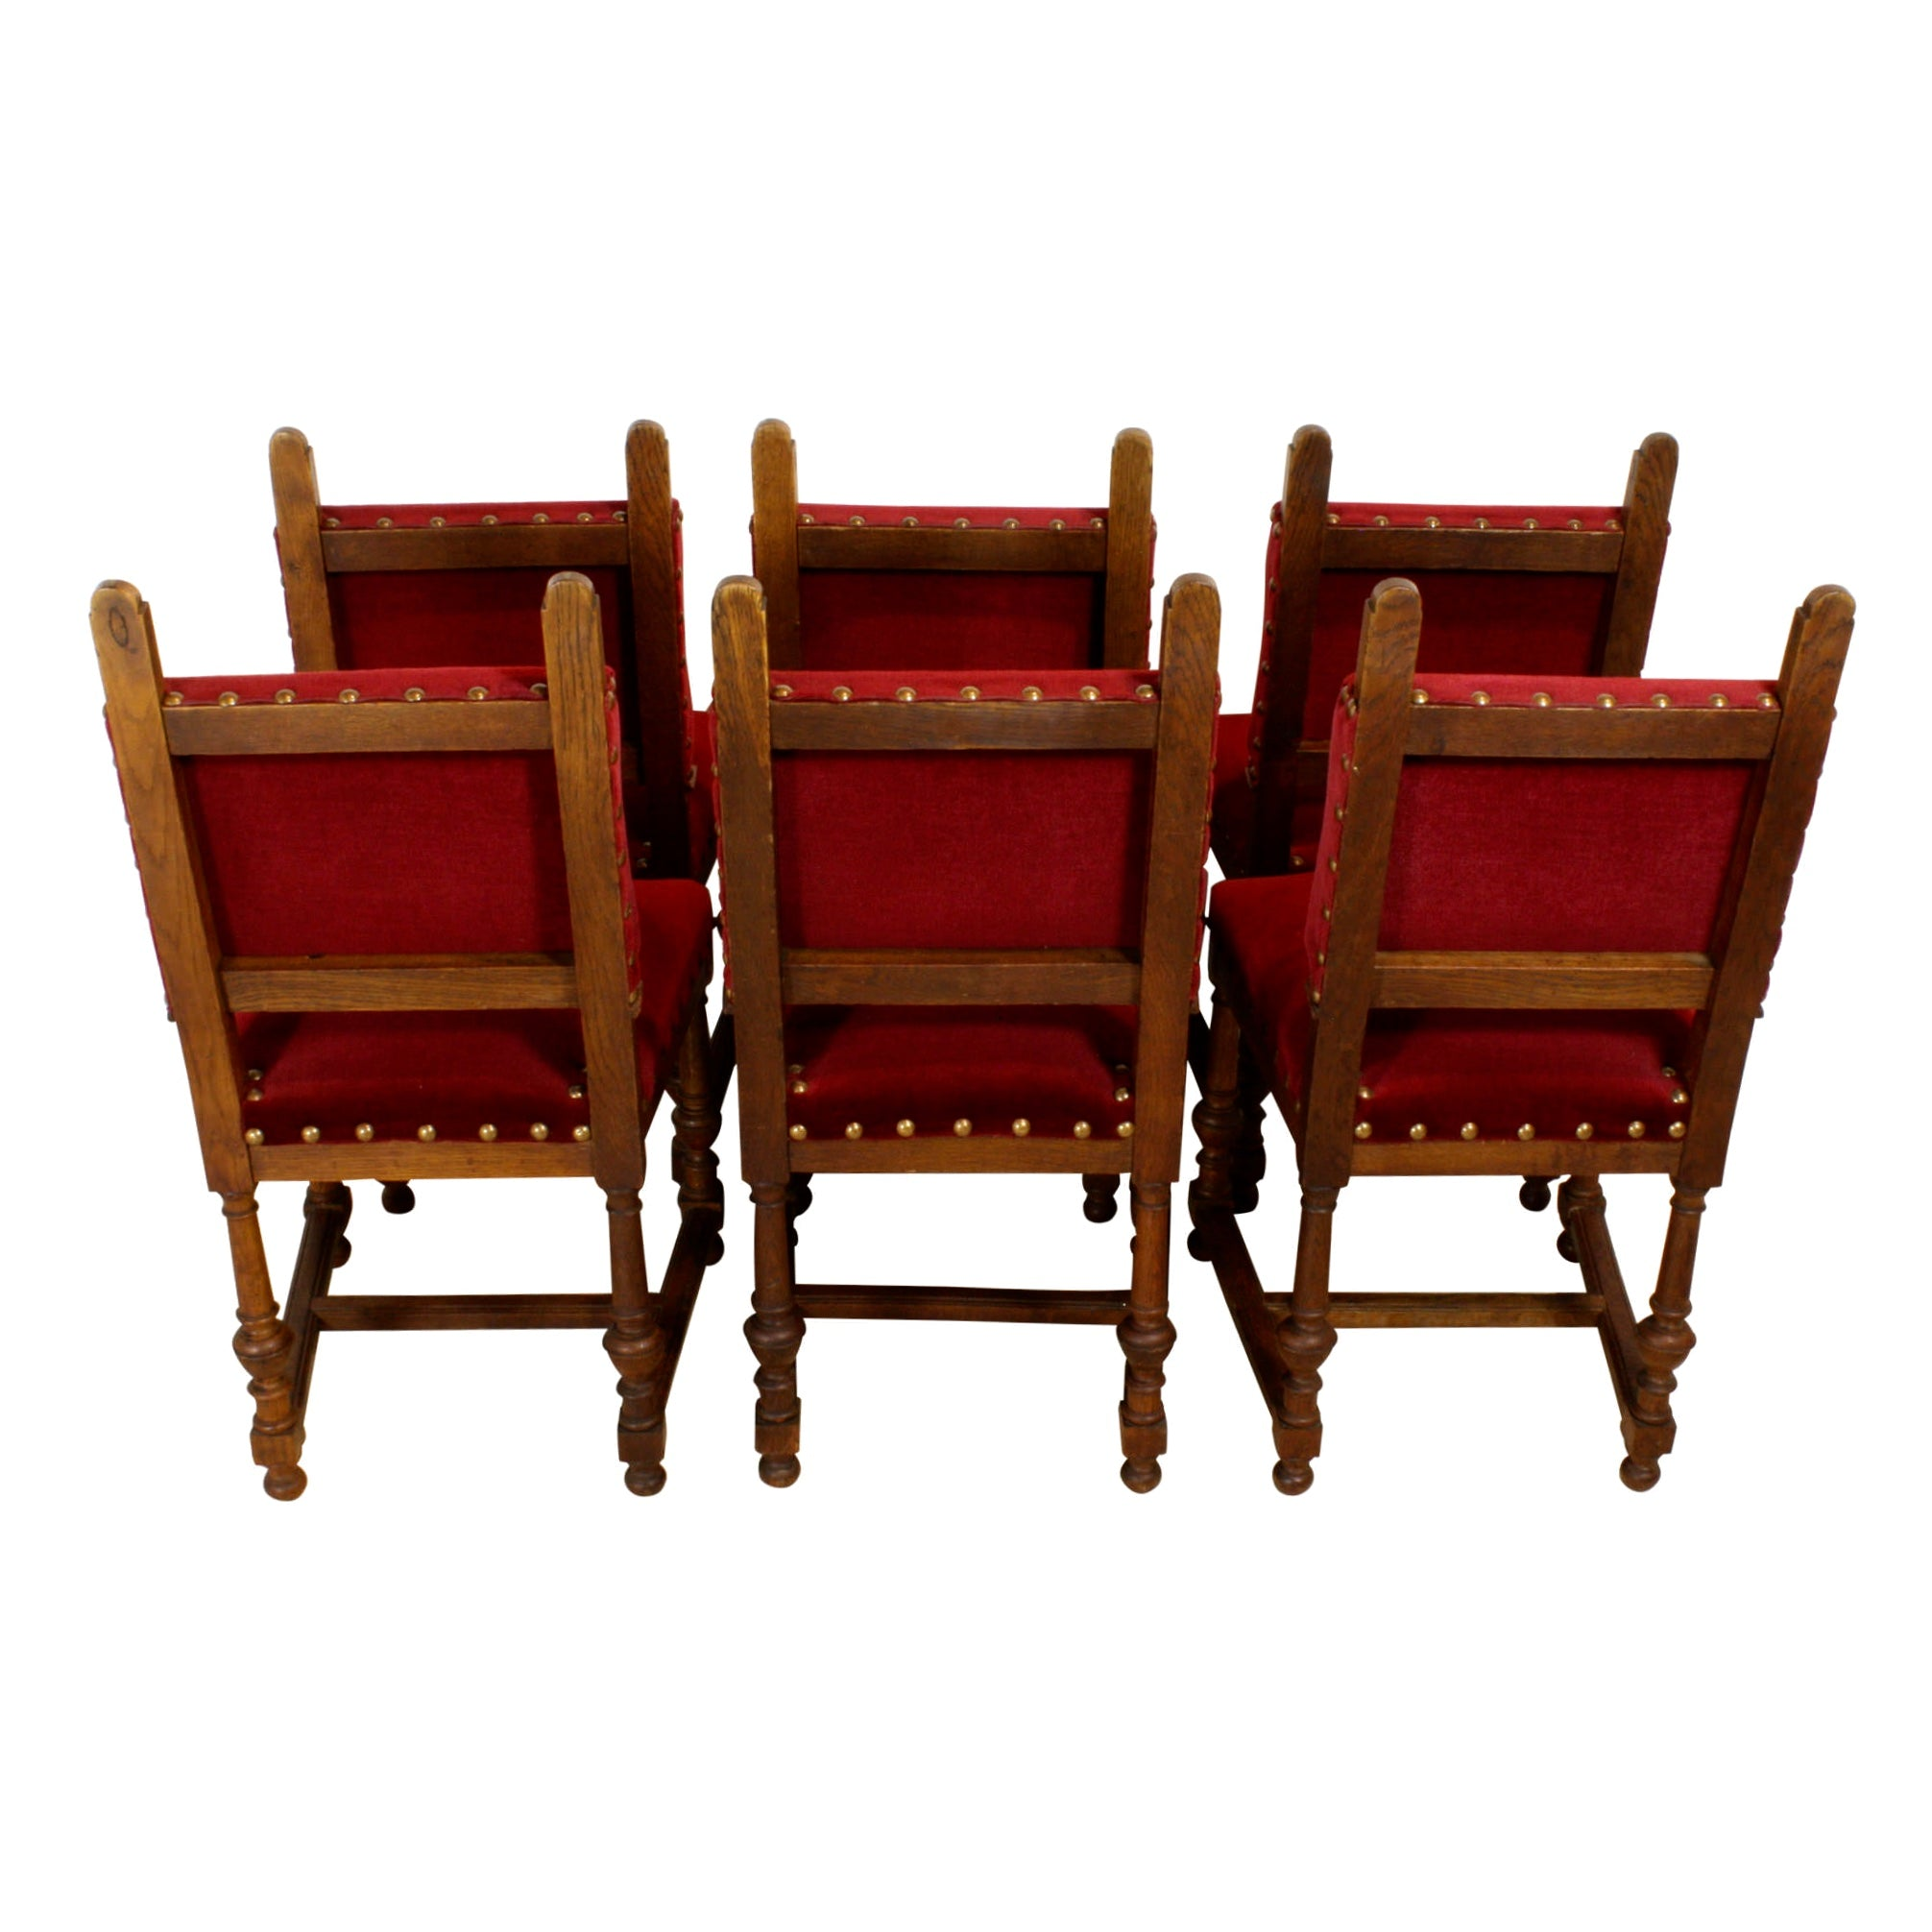 Carved Oak Chairs - Set of Six